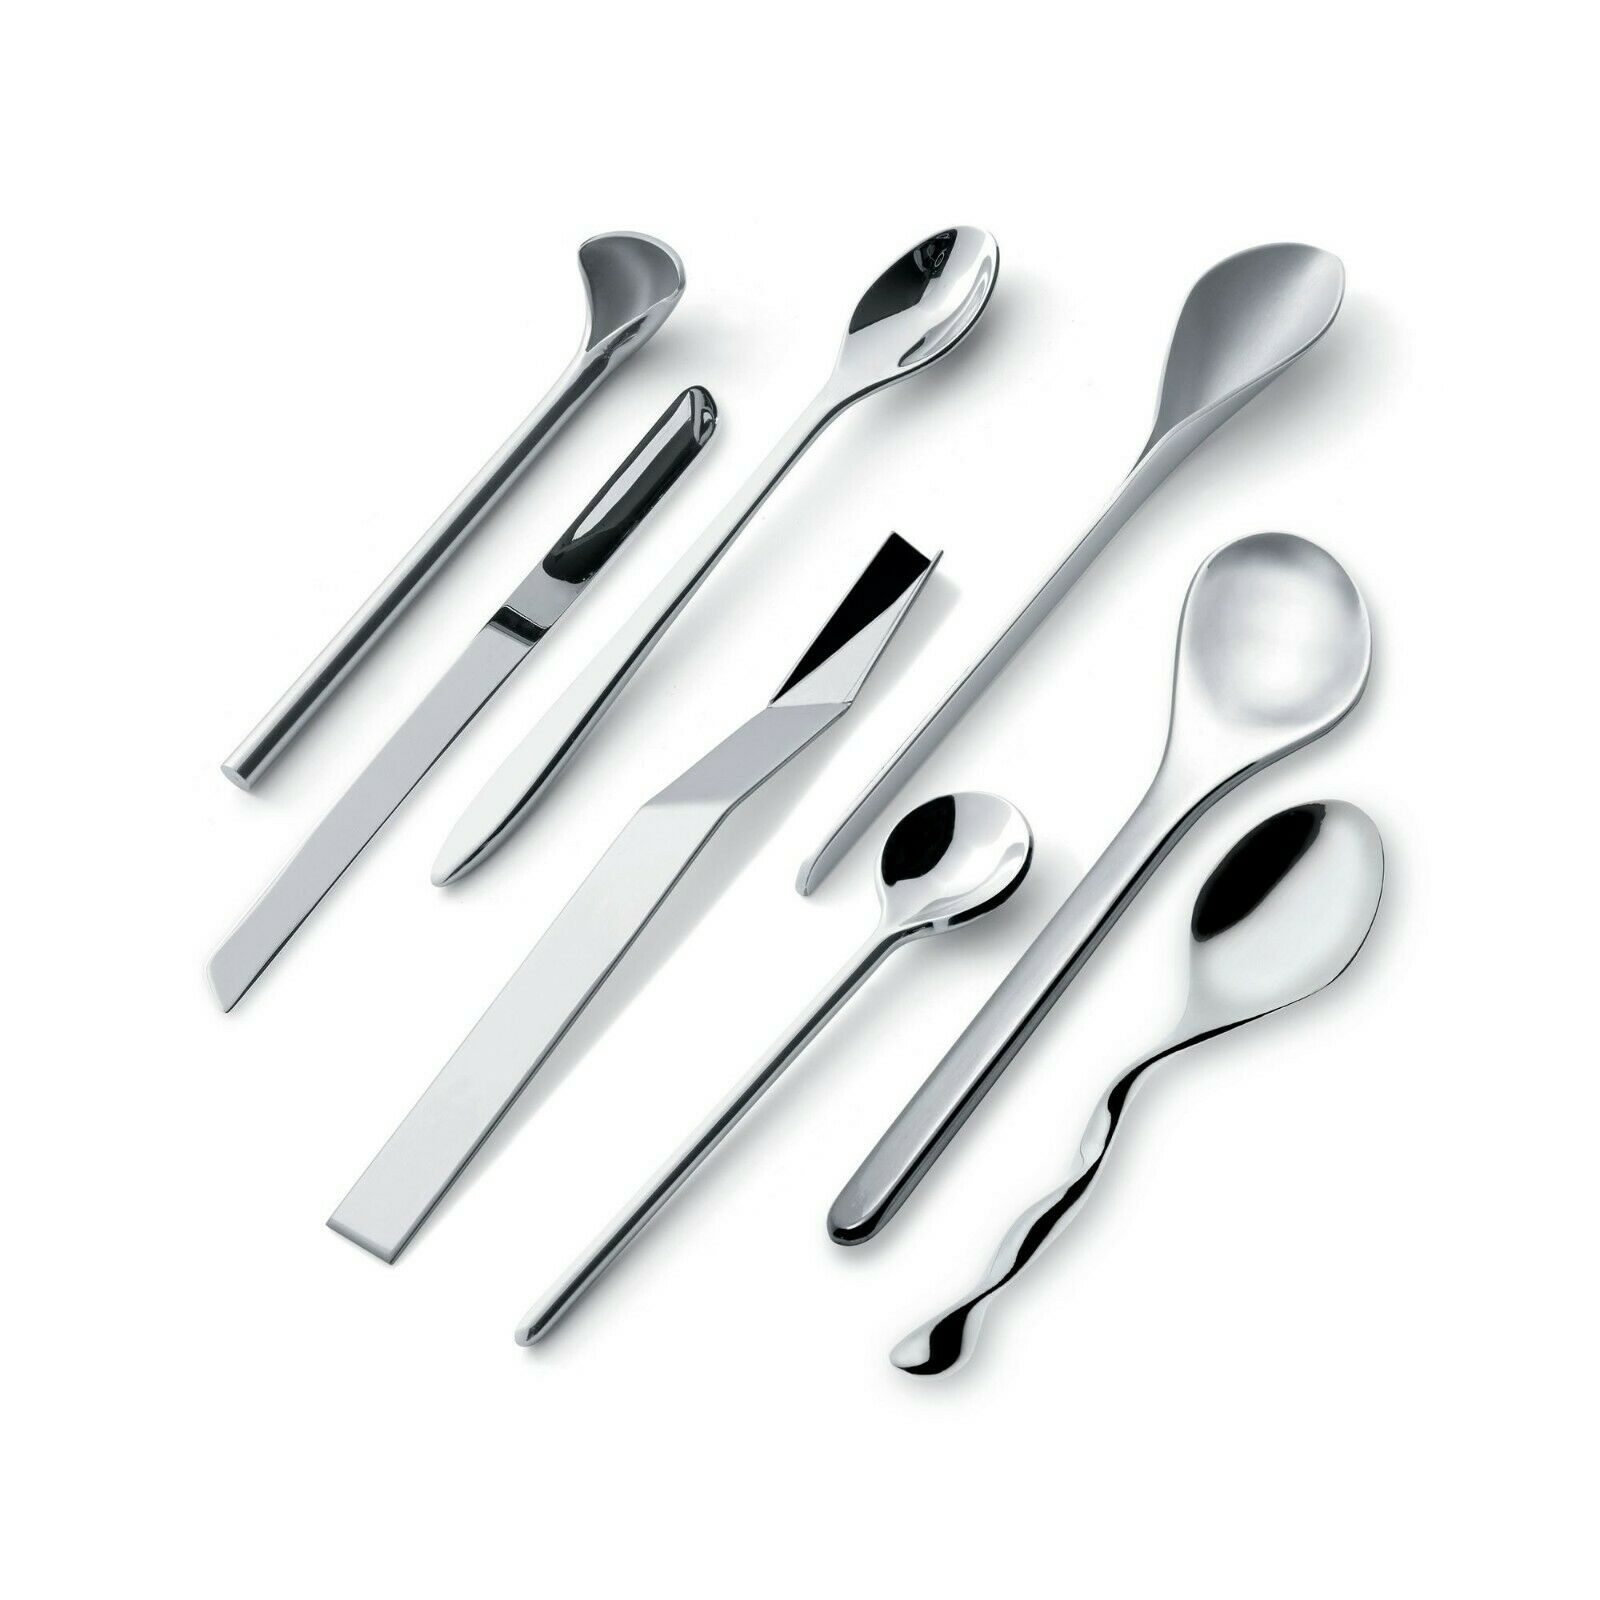 Officina Alessi Assorted Coffee Spoons, Set of 8 inox